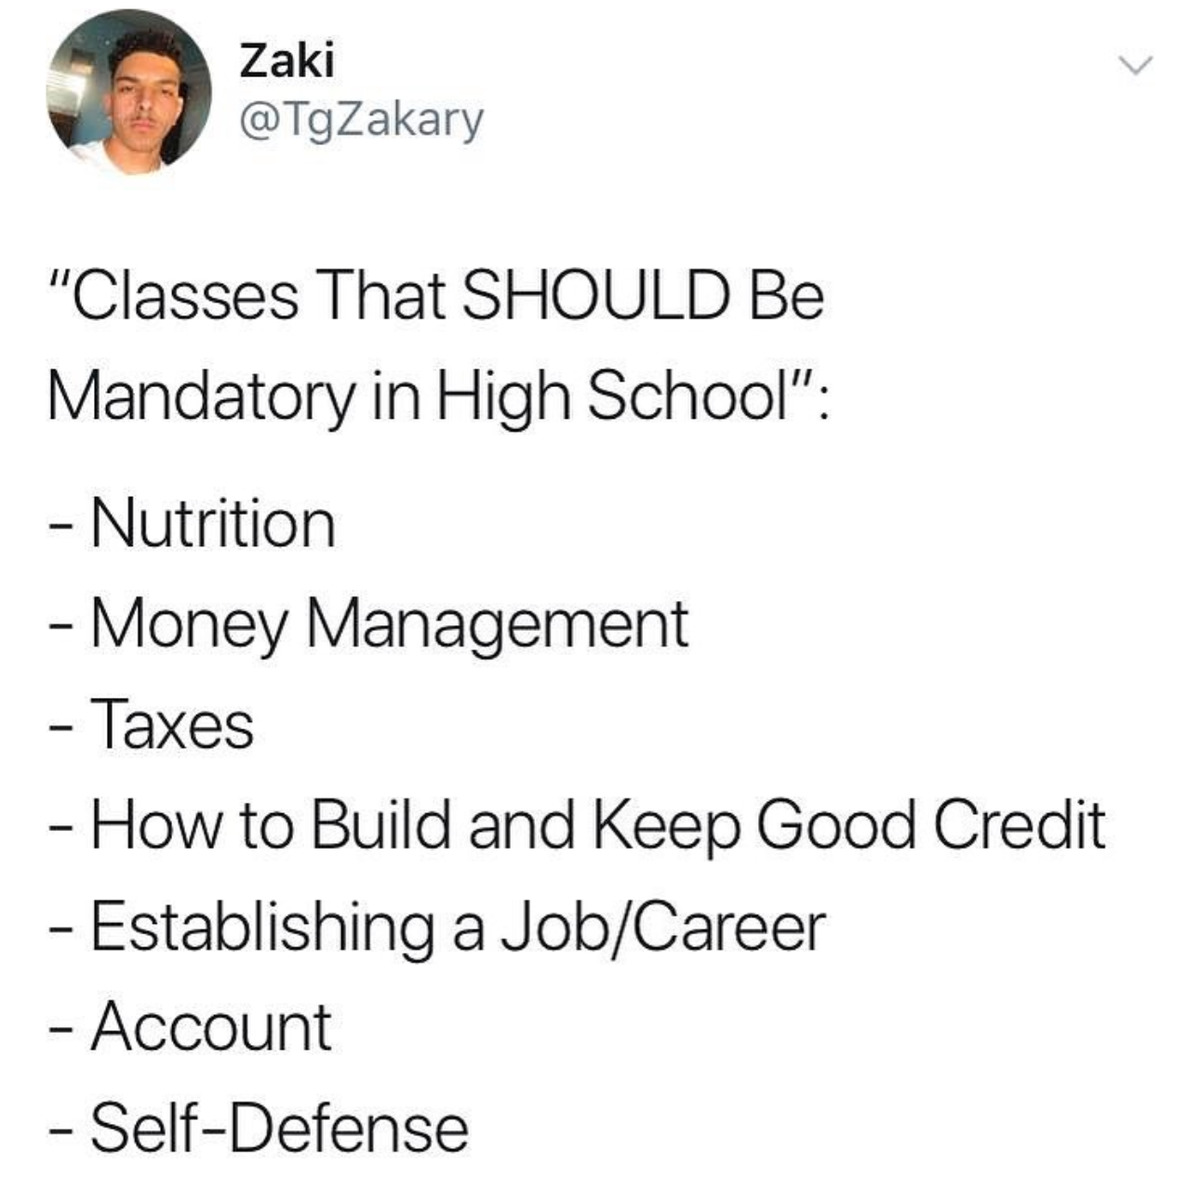 boy says nutrition, money management, taxes, credit management, career planning, and accounting should be mandatory high school classes